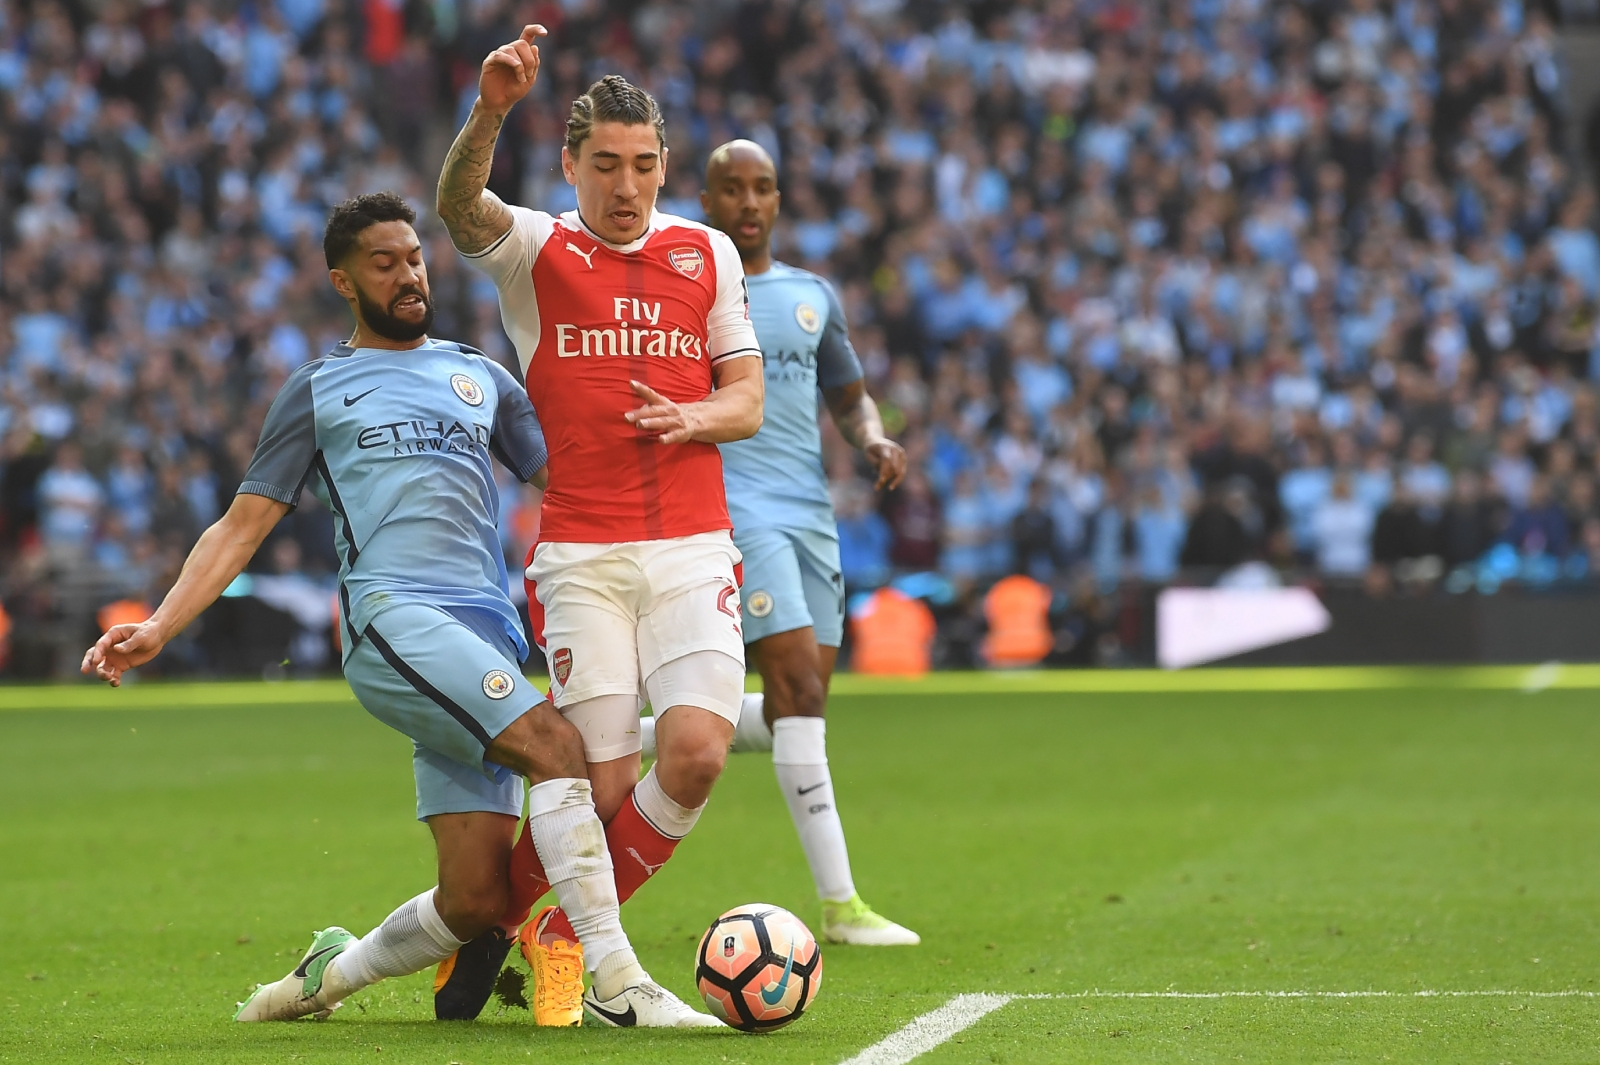 Arsenal vs Manchester City 23rd April 2017: FA Cup Preview and Predictions